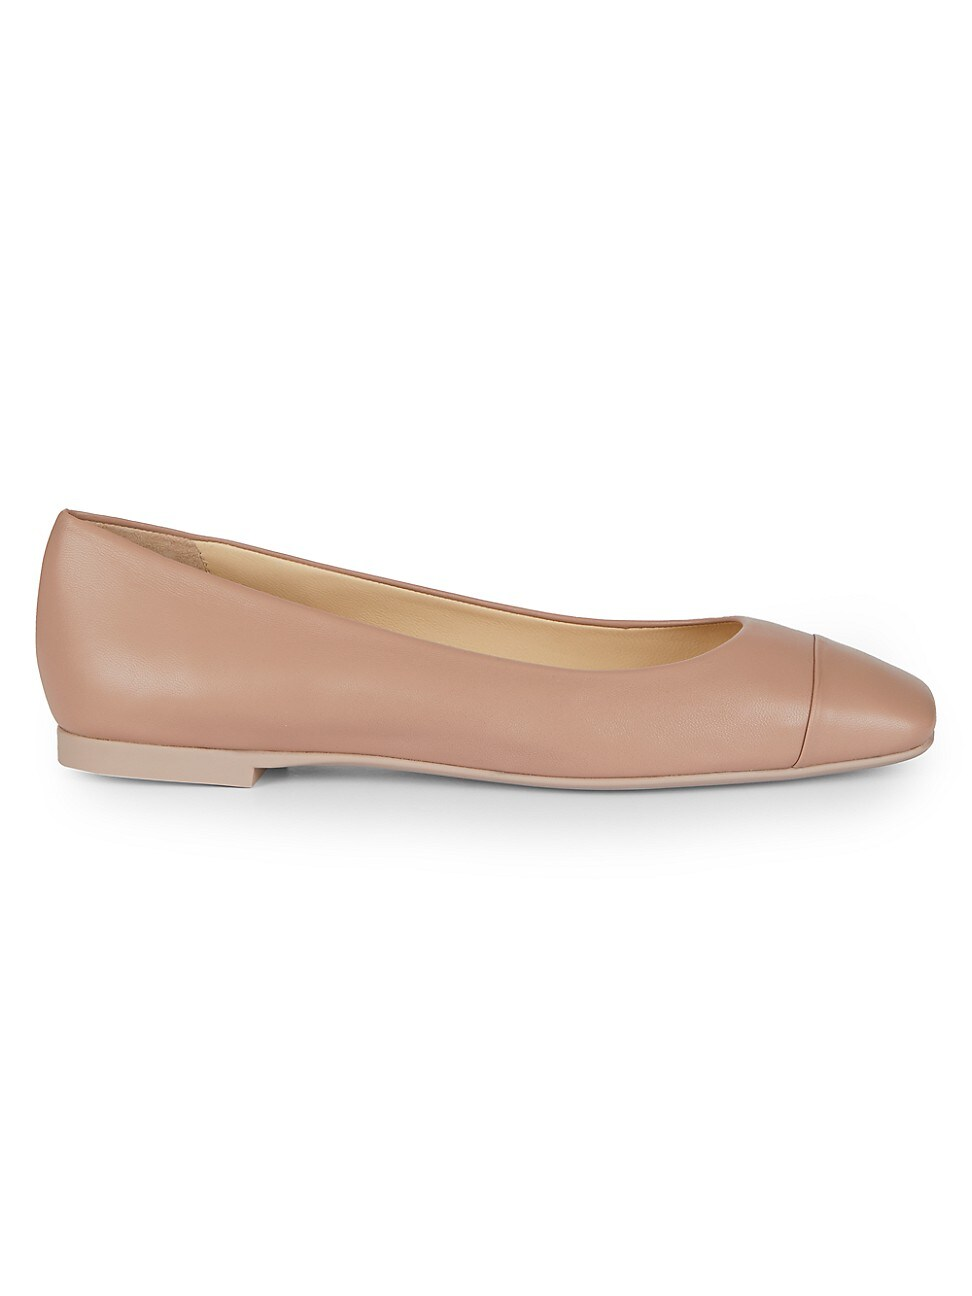 Jimmy Choo WOMEN'S GLORIS SQUARE-TOE LEATHER BALLET FLATS